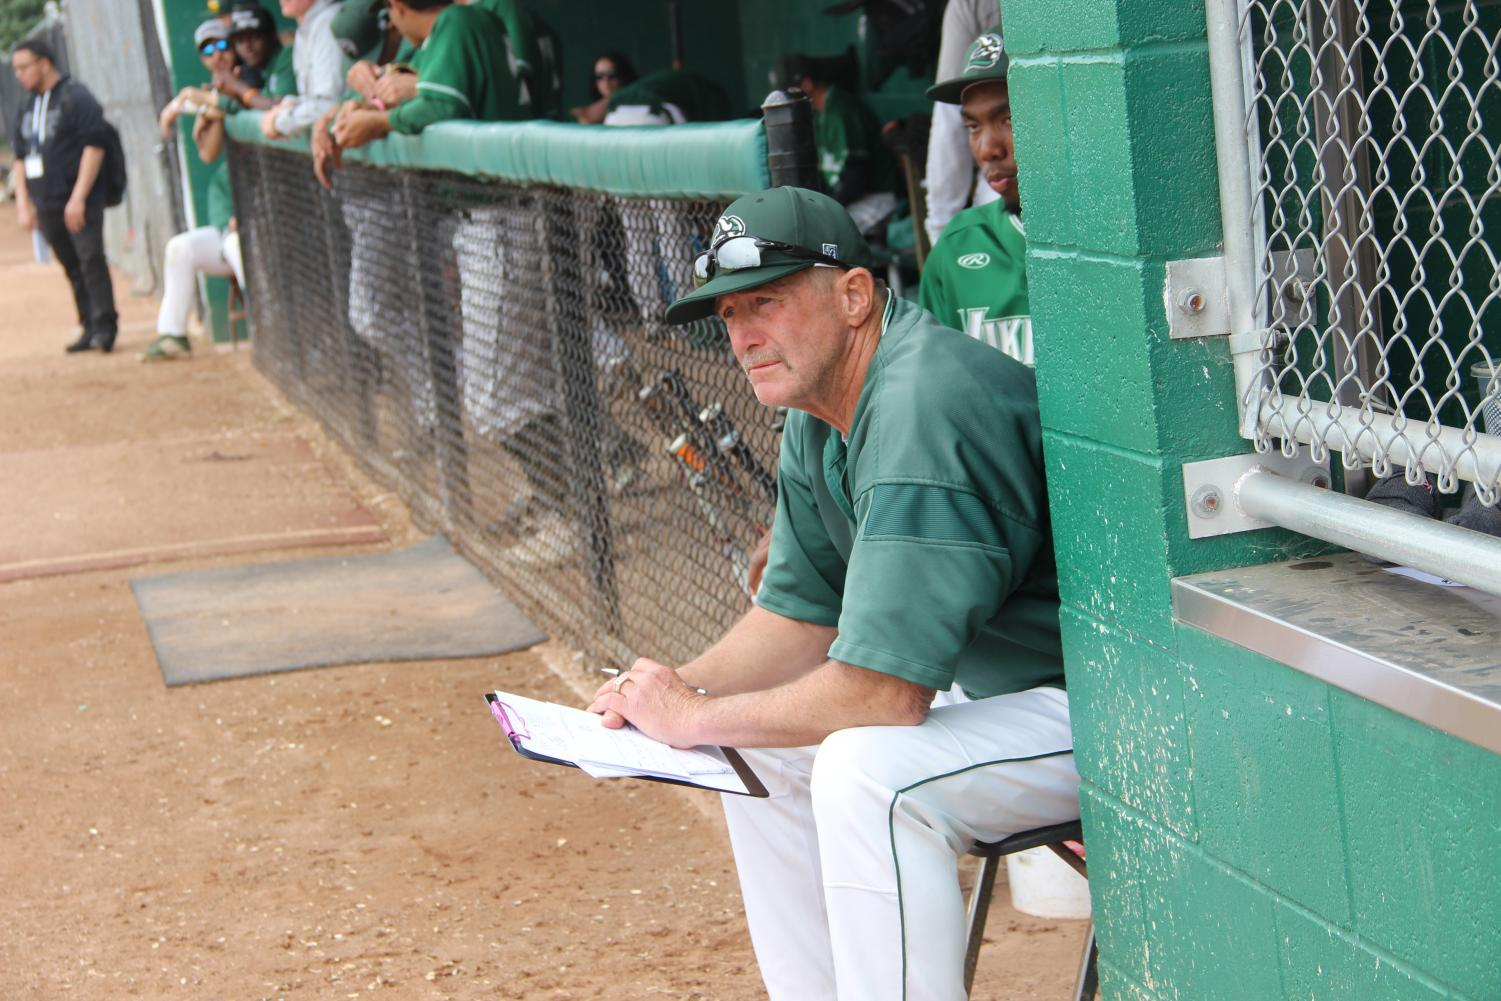 Coach Steve Ward watches the baseball team's match up against the Modesto Pirates from their dugout on March 19, 2019. Vikings lost 7-1. (Alex Martin/The Inquirer)